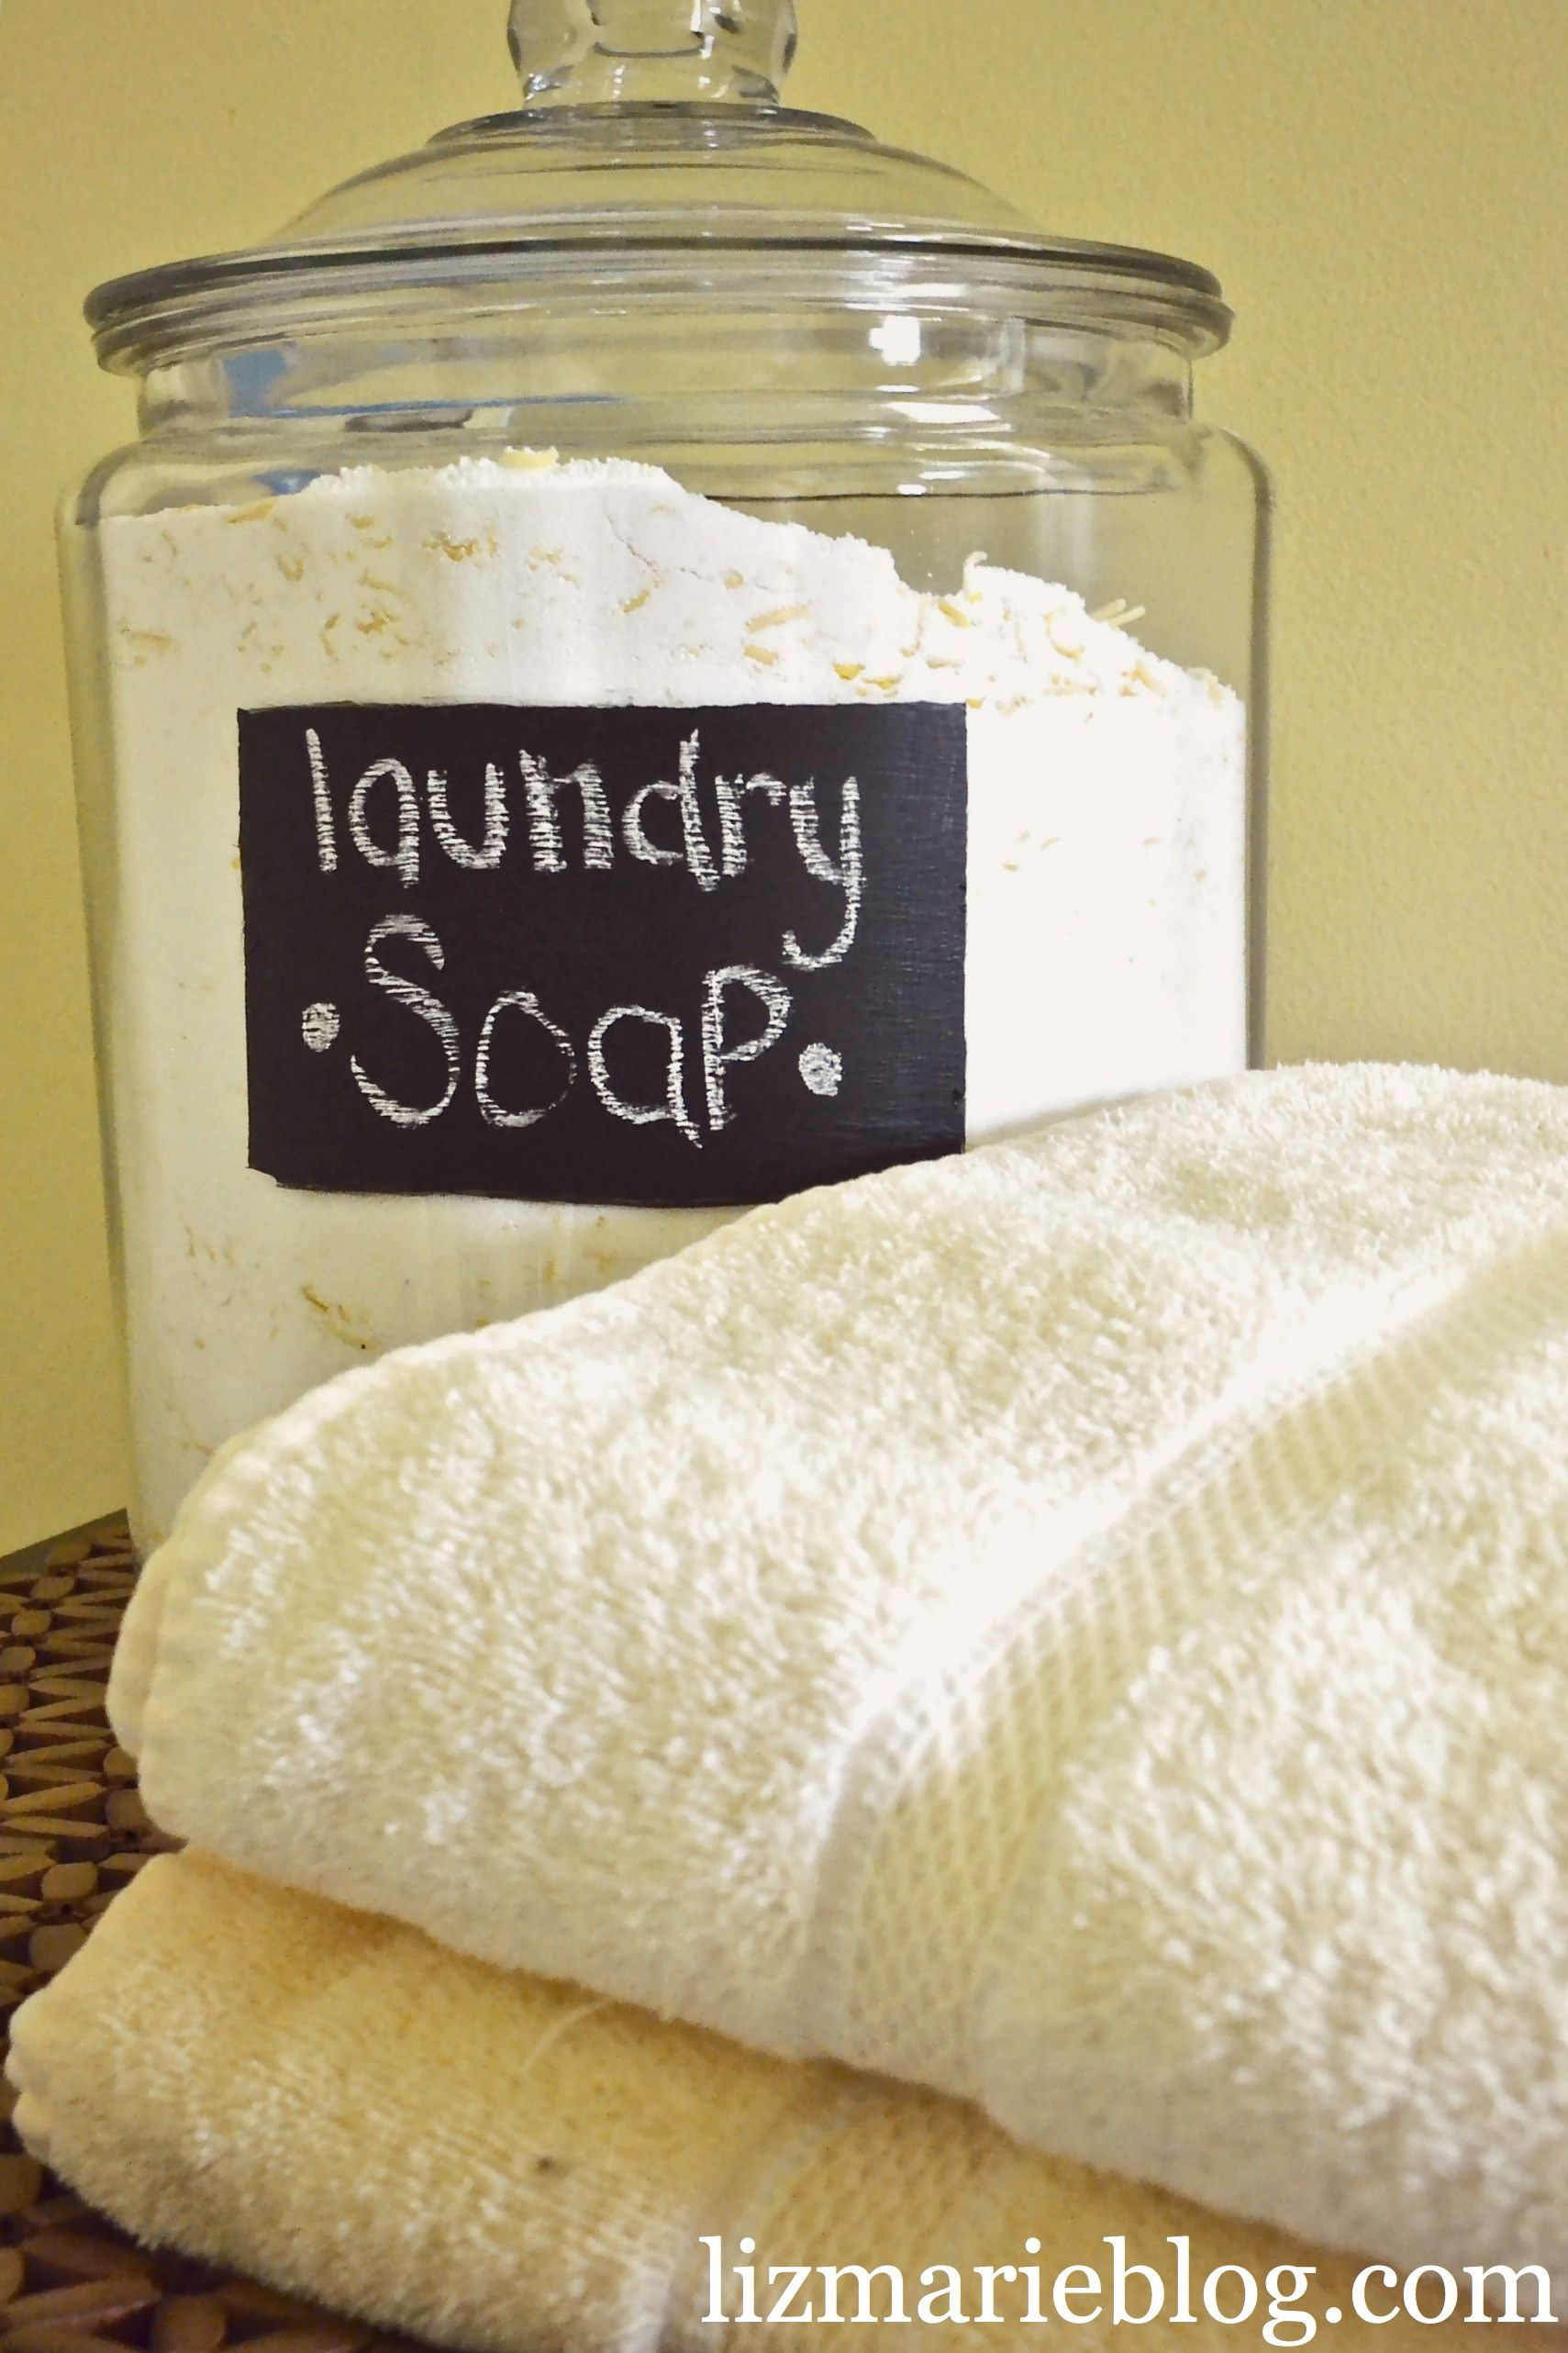 Pin By Teresa Clark On Laundry Day Laundry Soap Diy Laundry